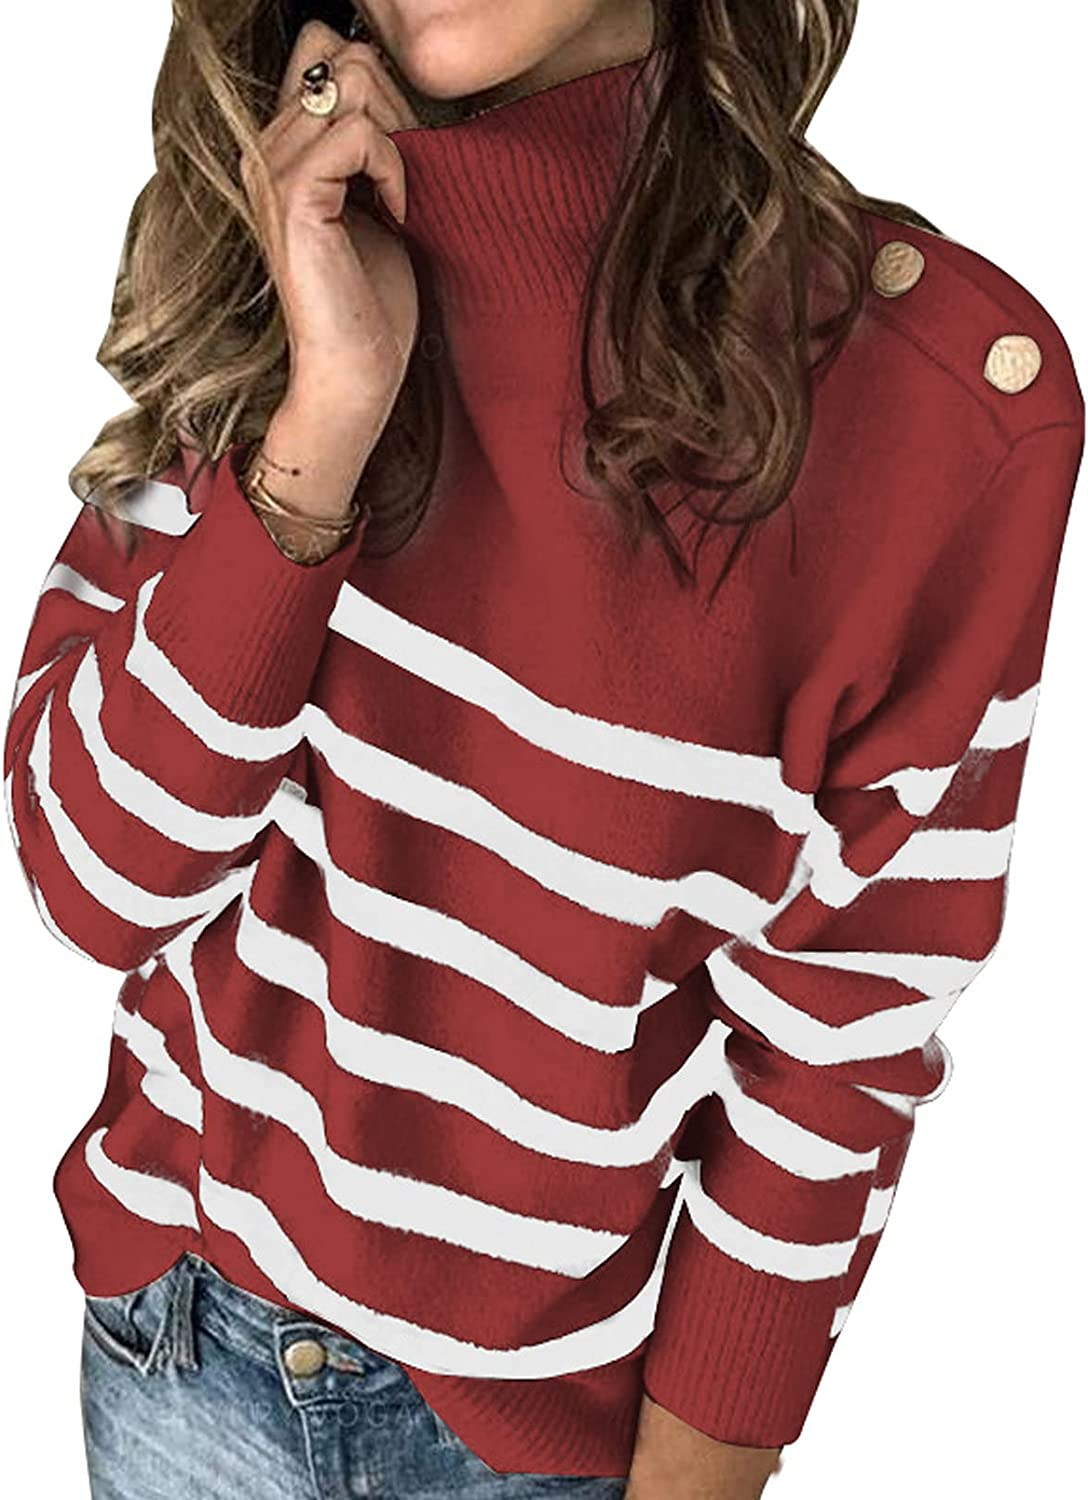 Actloe Womens Turtleneck Sweaters Button Deco Long Sleeve Color Block Stripe Pullover Sweater Knit Jumper Tops